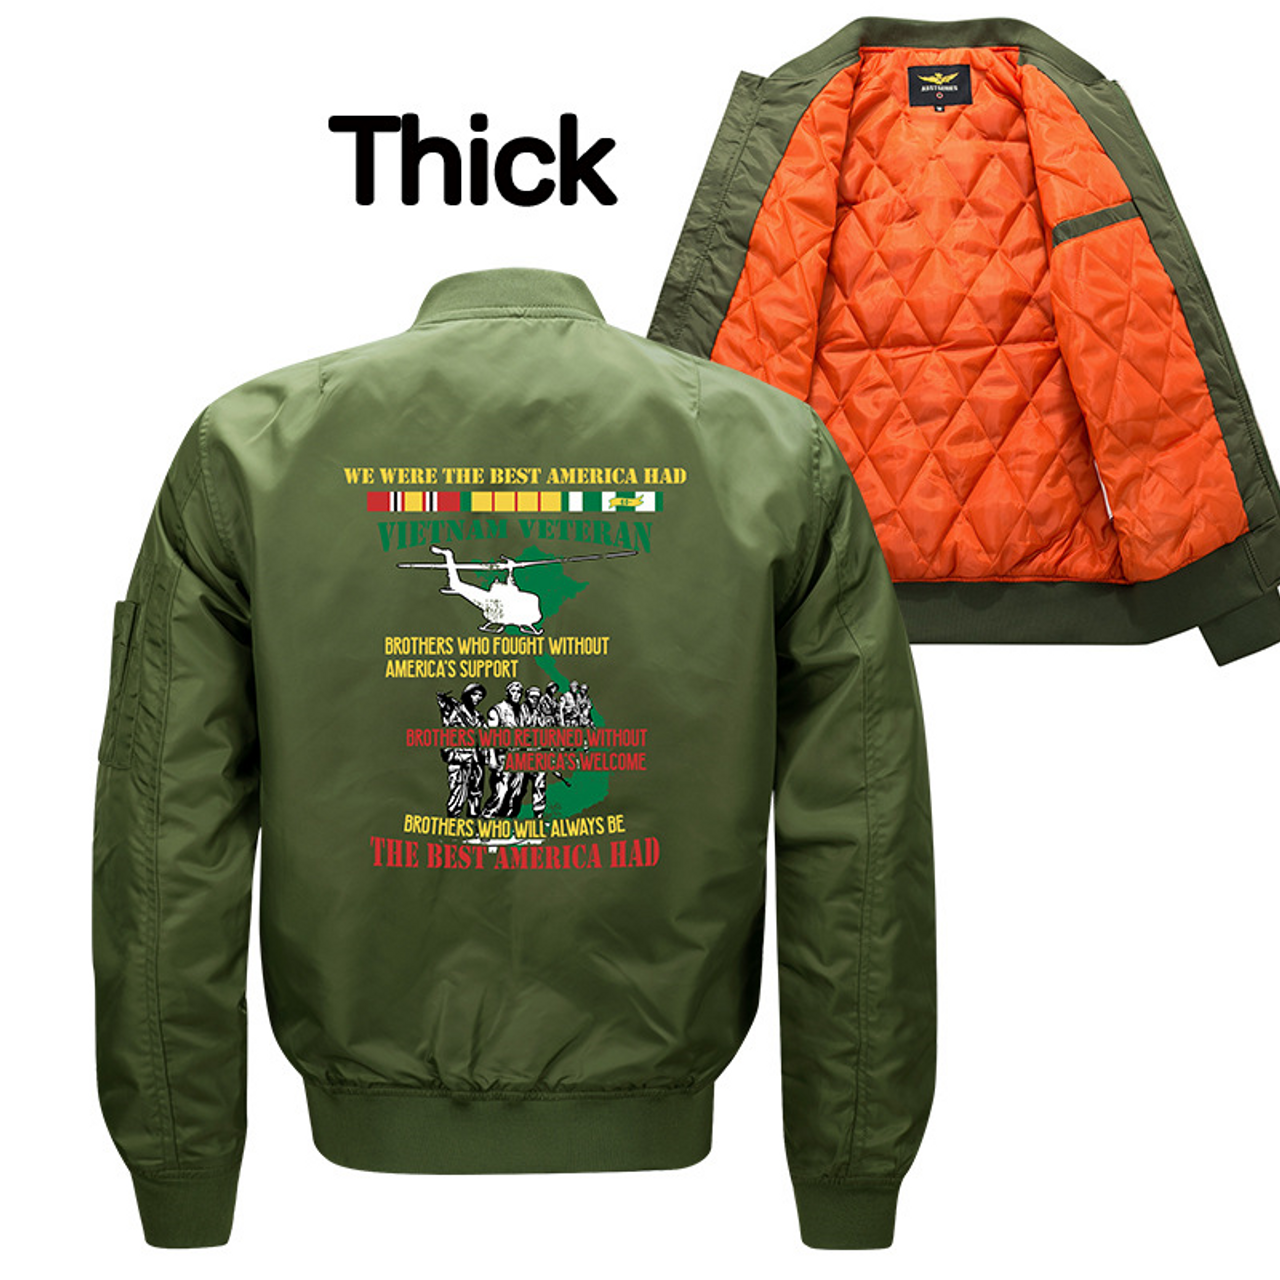 36293293f **NEW-OFFICIALLY-LICENSED-U.S.  VIETNAM-VETERAN,MENS-HEAVY-WEIGHT-THICK-FLIGHT/BOMBER-JACKETS,WE-WERE-THE-BEST-AMERICA-HAD  & BROTHERS-IN-ARMS/U.S. ...